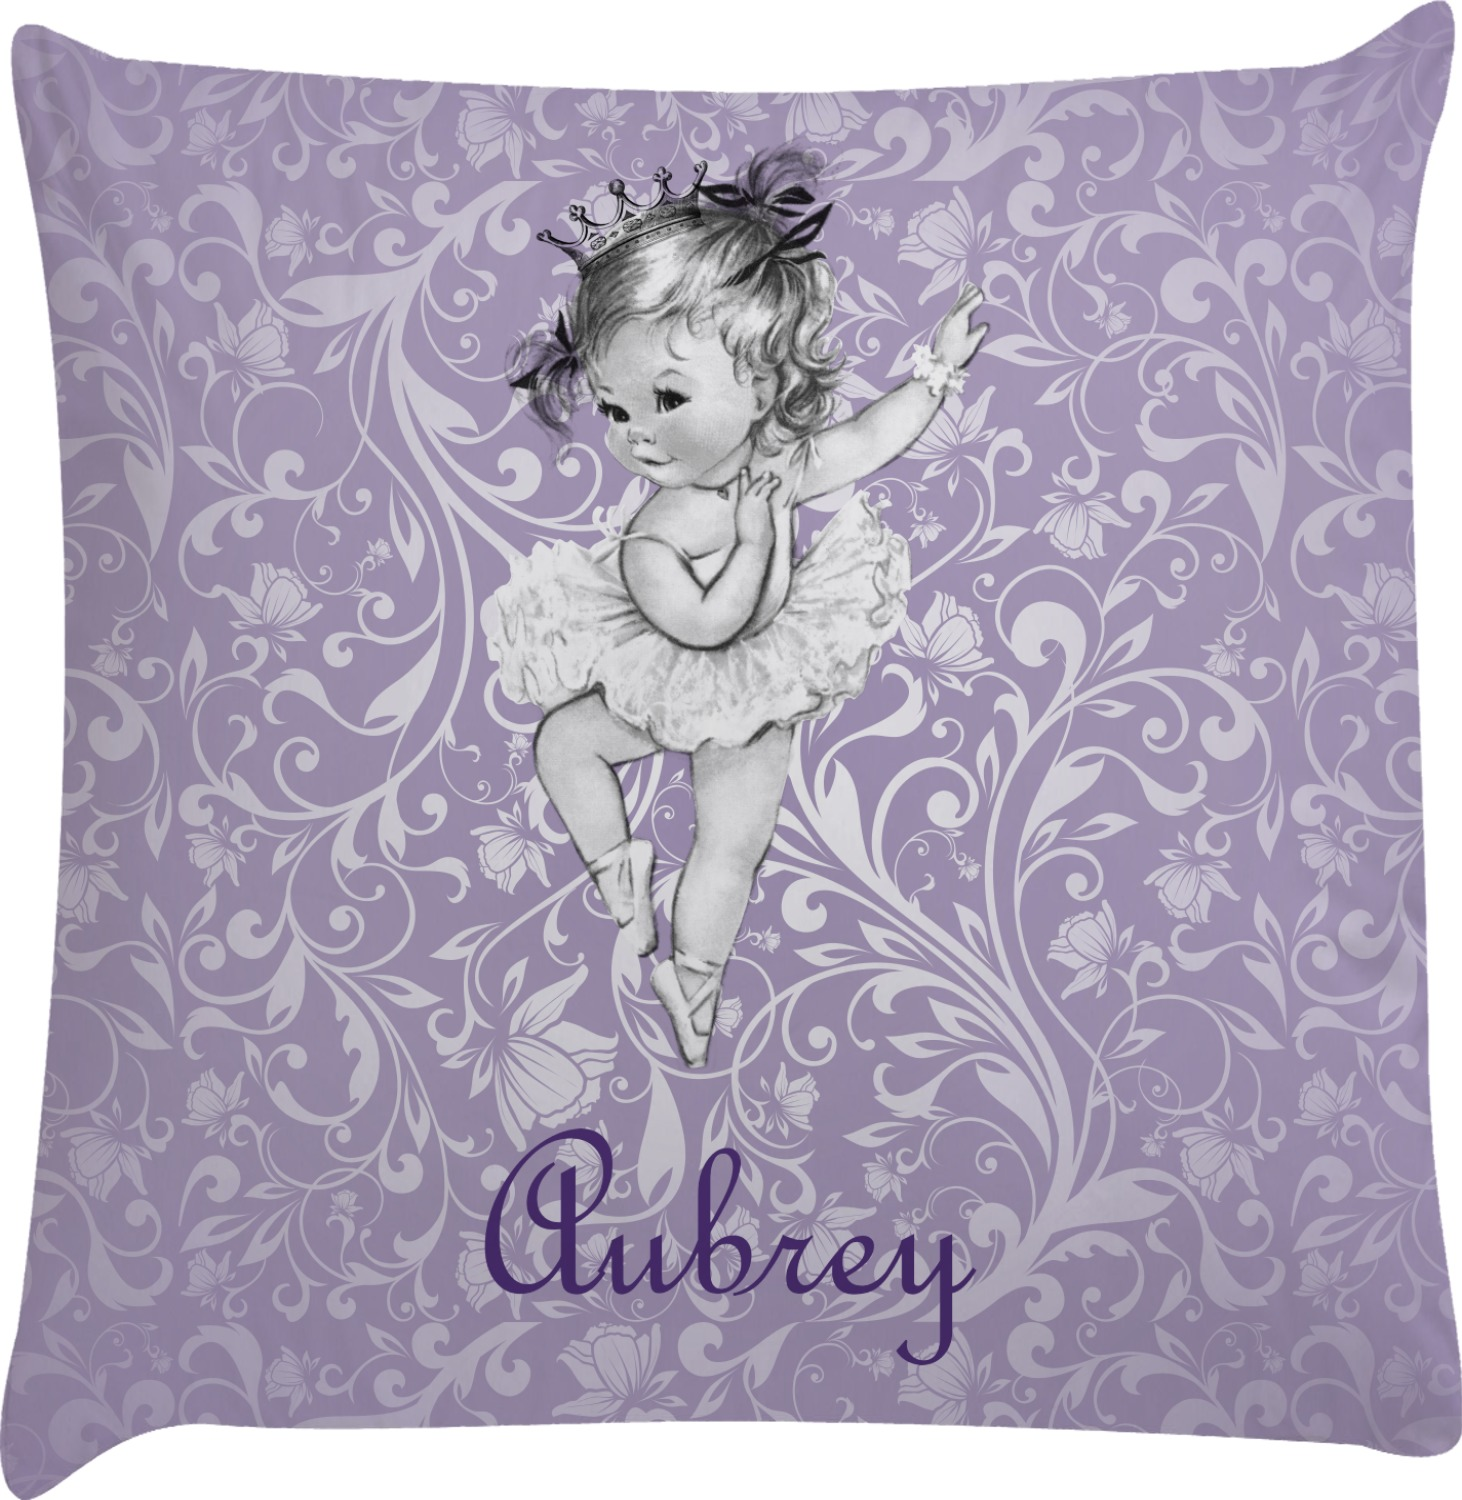 Ballerina Decorative Pillow Case (Personalized) - YouCustomizeIt